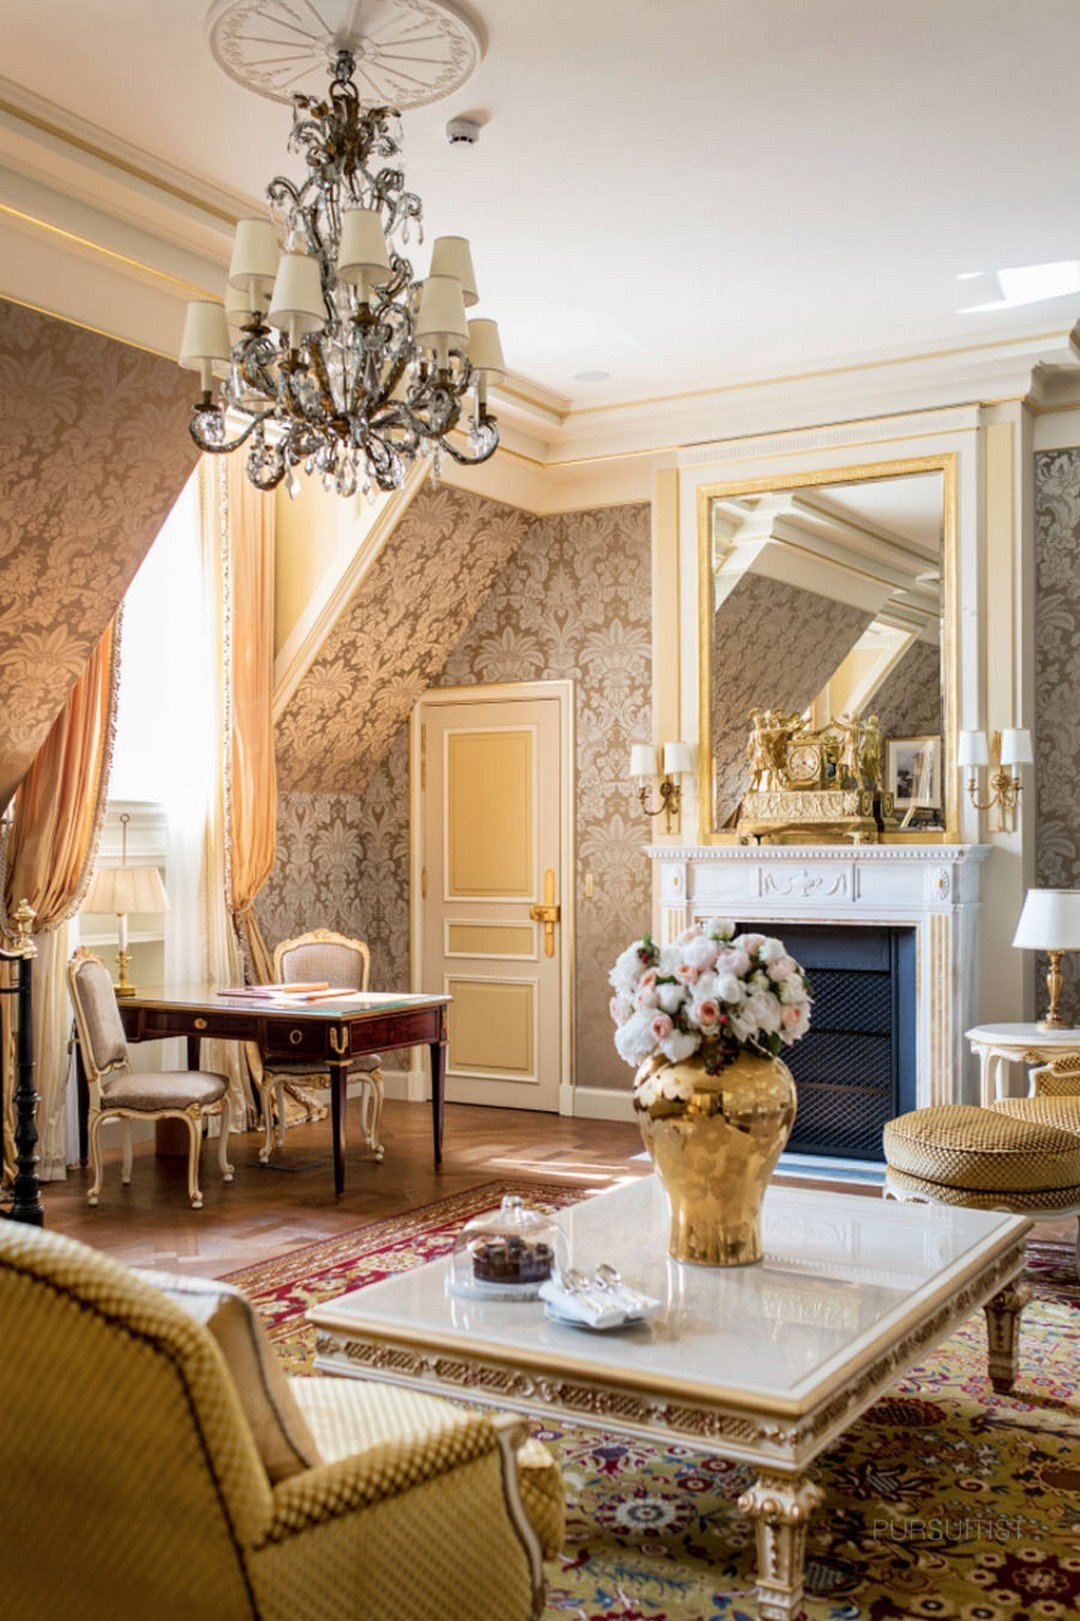 Paris themed Living Room Decor Awesome 29 Luxurious Parisian Style Home Decor the Master Of Harmonious Living Goodnewsarchitecture